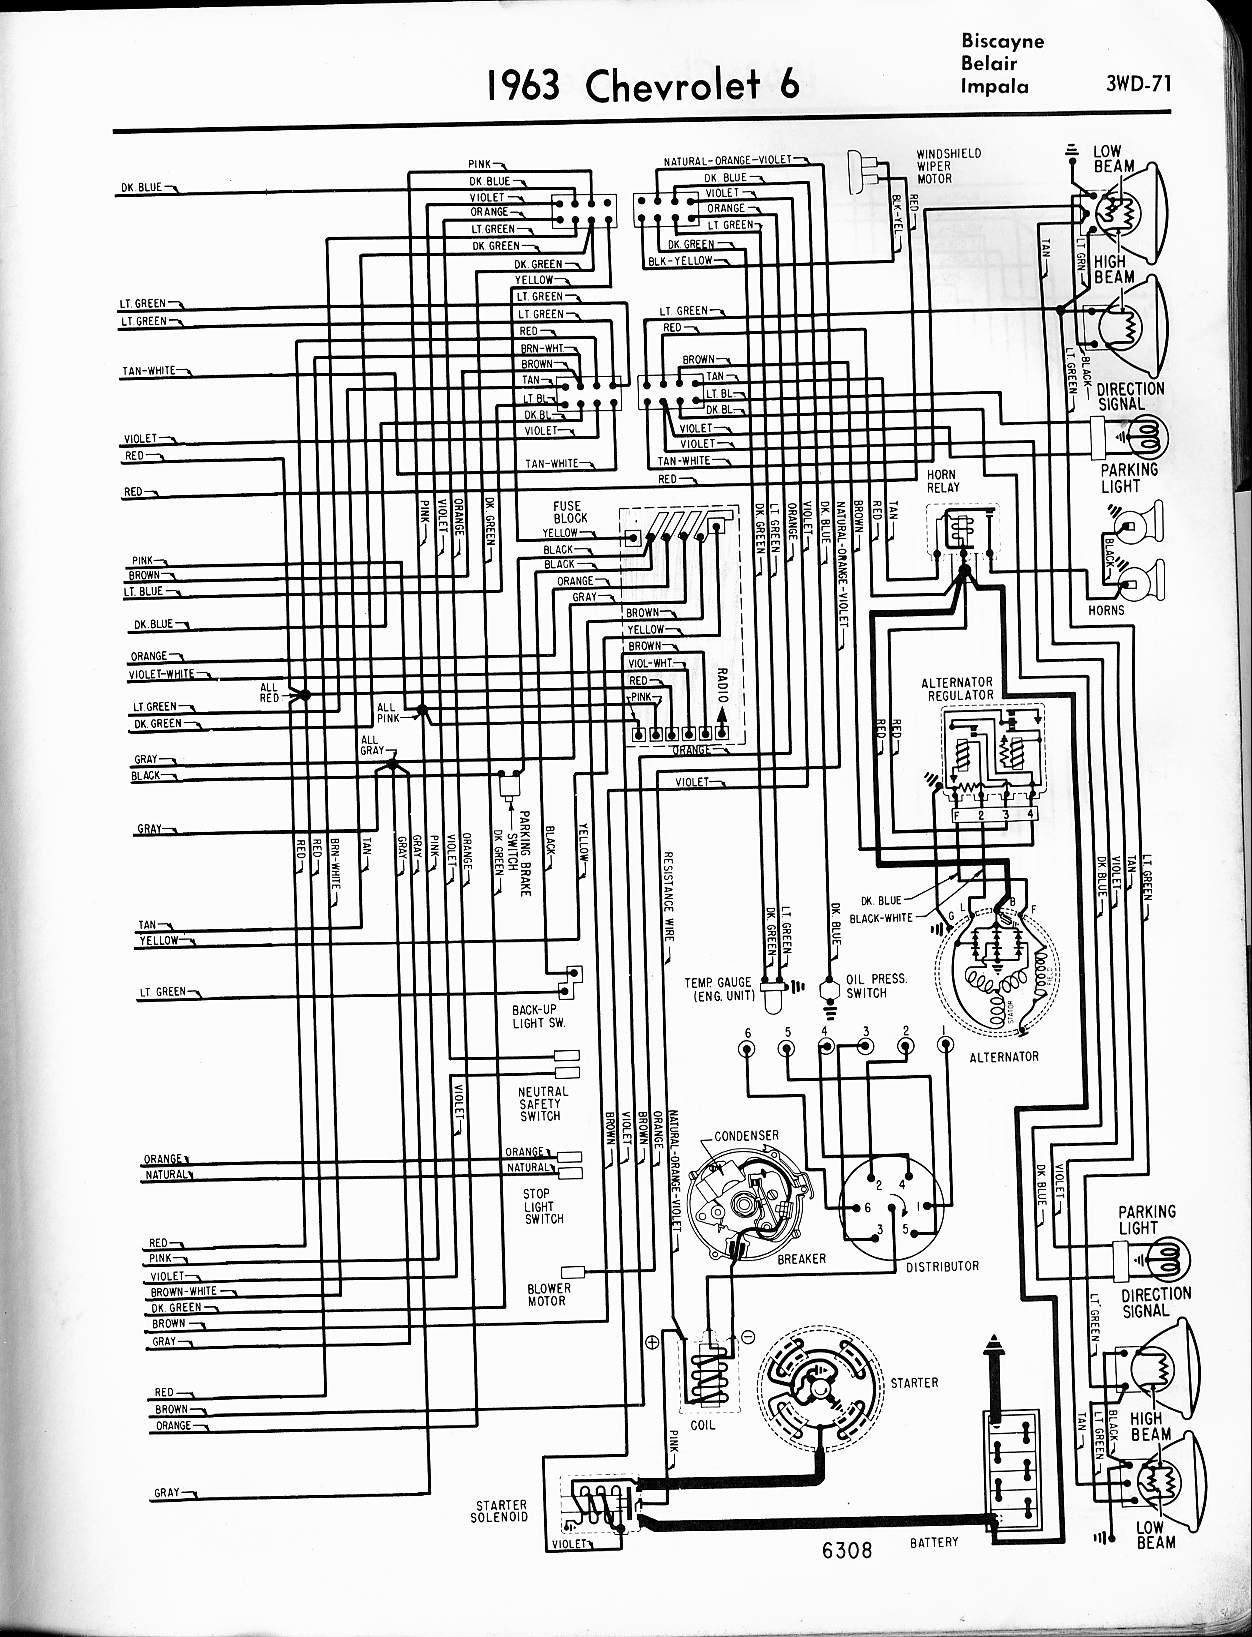 Heater Wiring Diagram 67 Impala Circuit And Hub 1967 Gauge 57 65 Chevy Diagrams Rh Oldcarmanualproject Com 1966